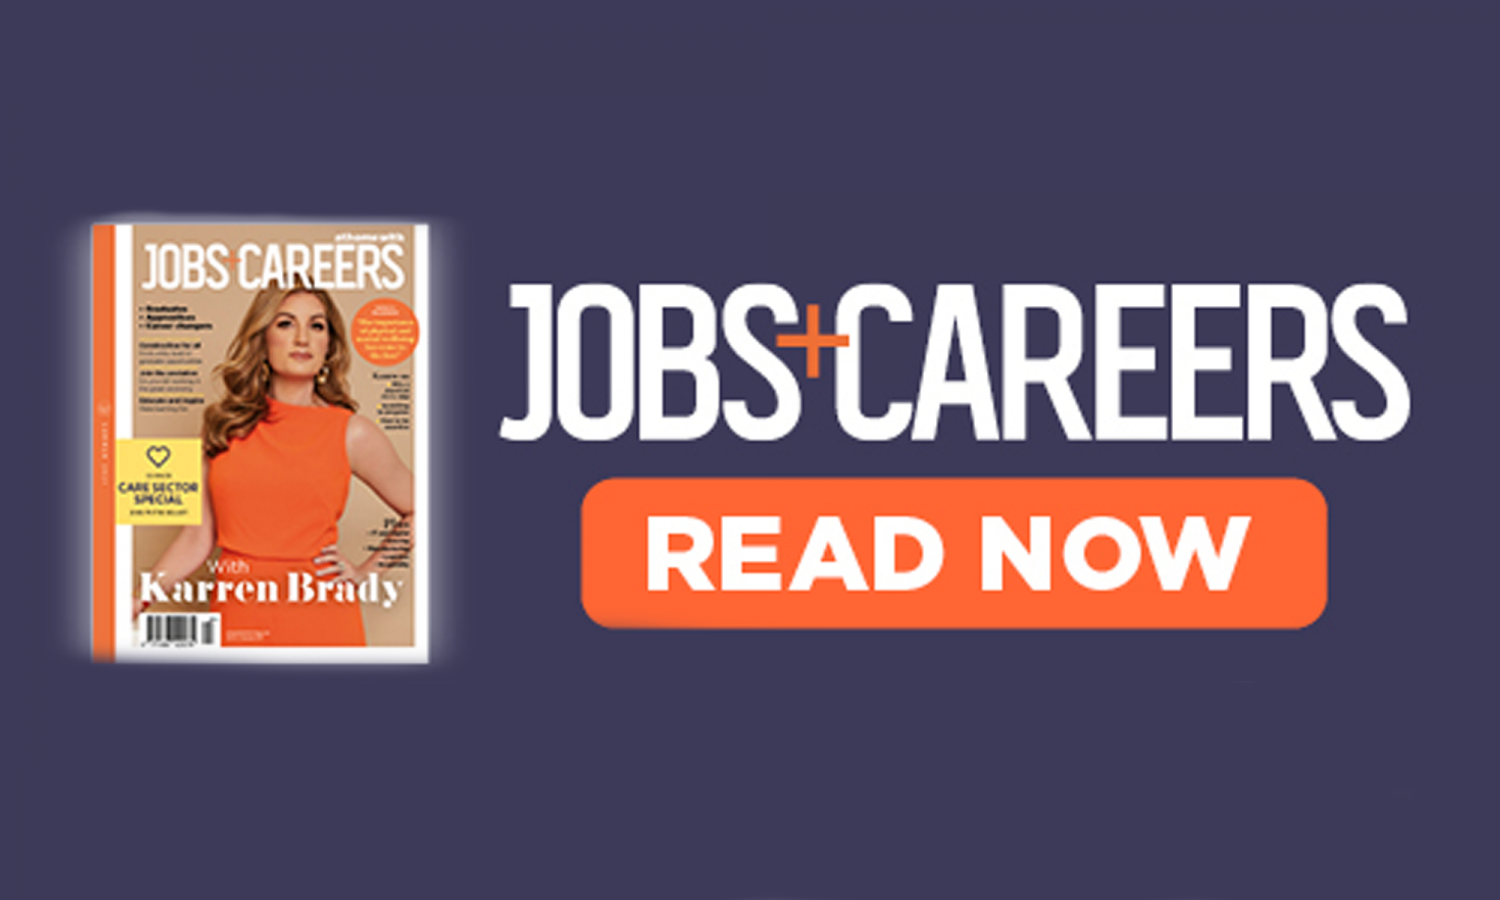 Jobs and Careers magazine cover